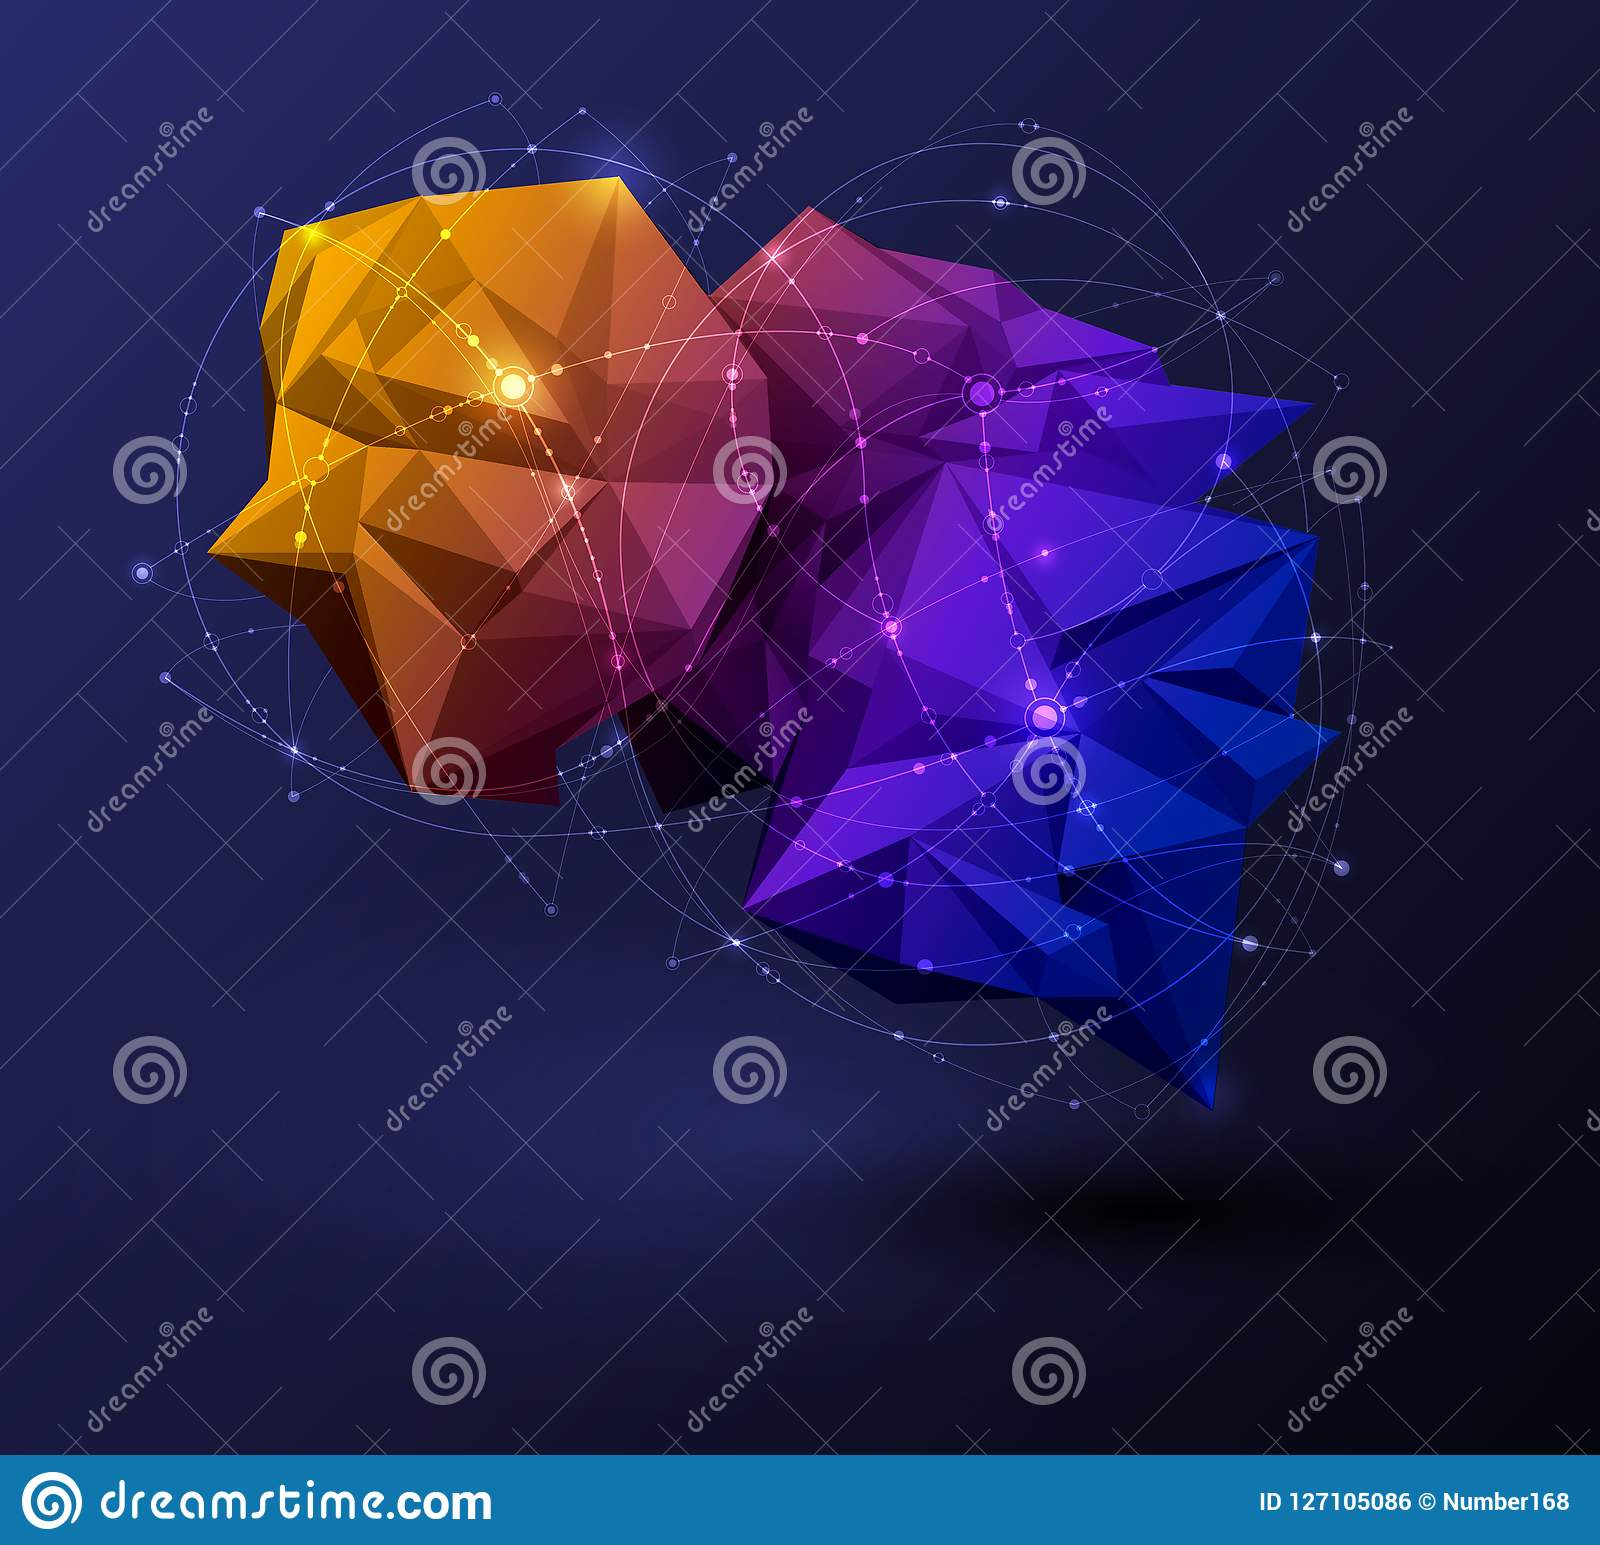 Polygonal with blue purple, yellow on dark blue background. Abstract science, futuristic, network connection concept